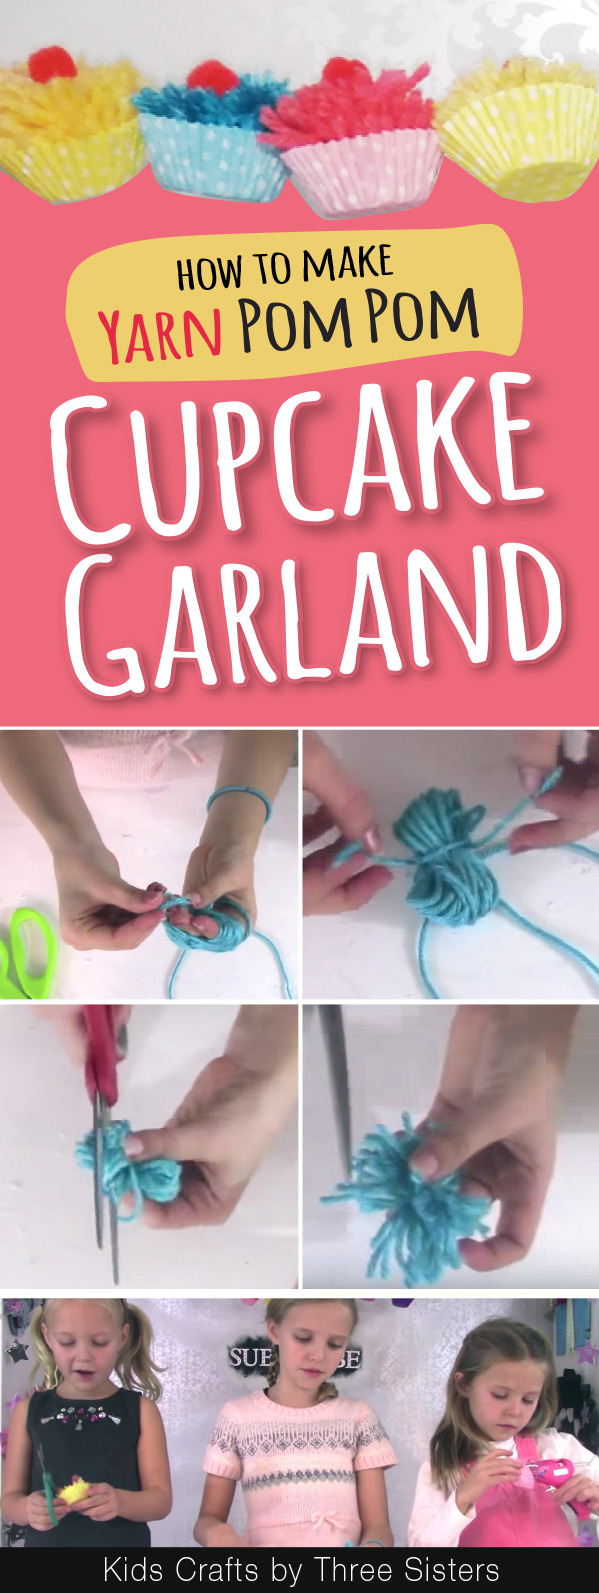 how-make-yarn-pom-poms-hands-kids-crafts